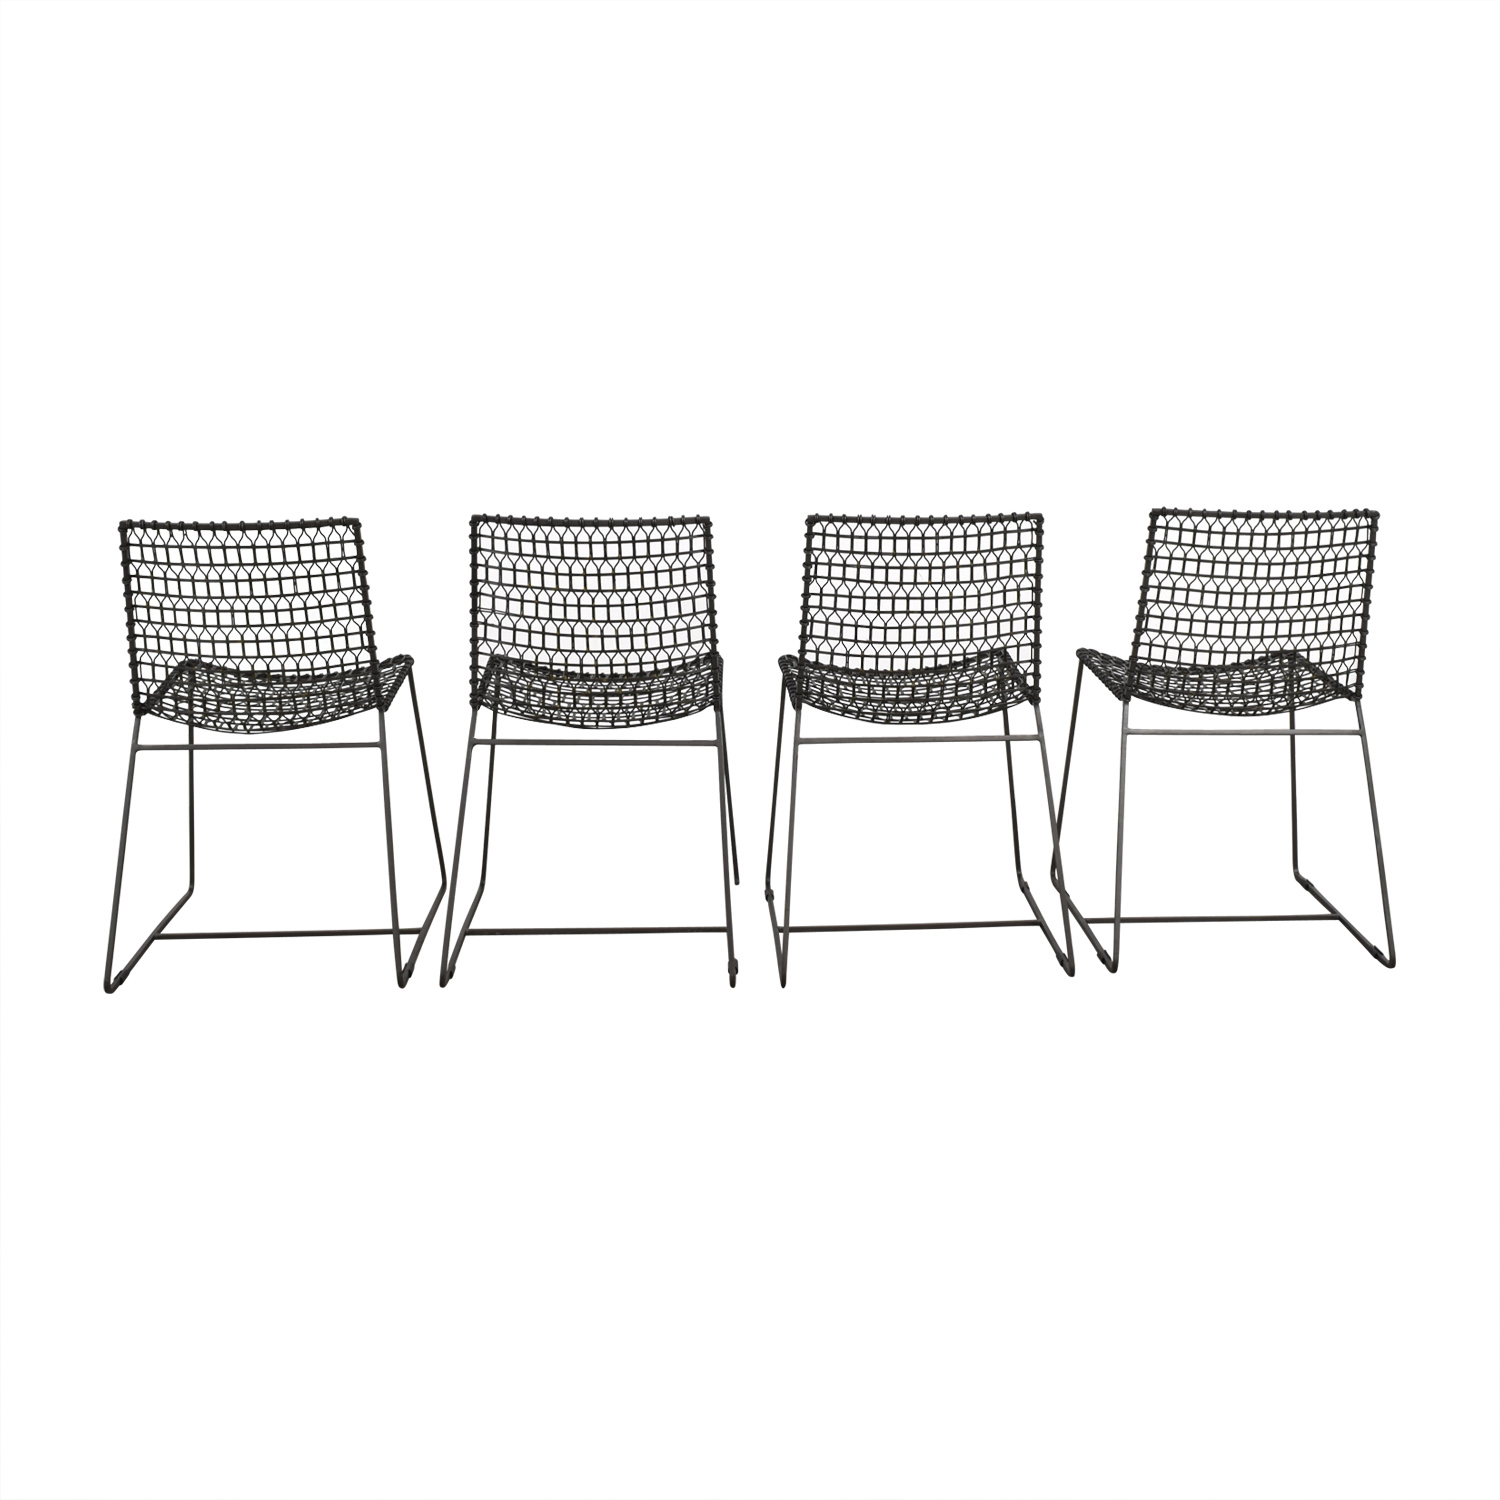 Crate & Barrel Crate & Barrel Metal Chairs GREY/METAL